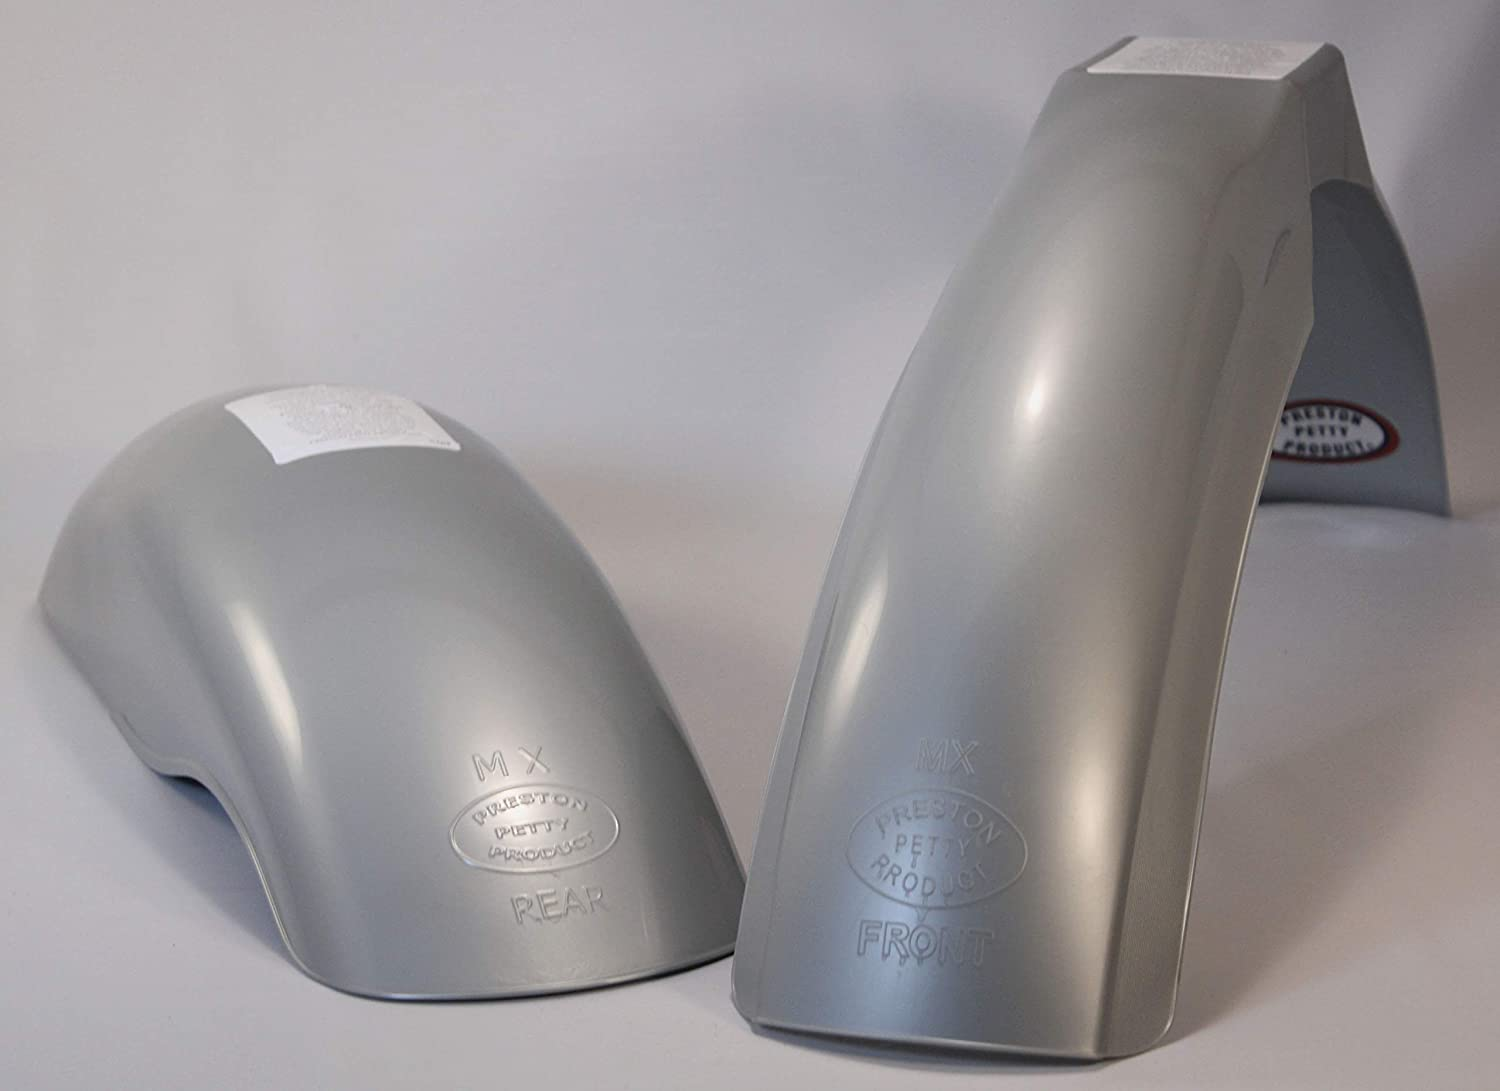 MX Fender Authentic Preston Petty Products Rear Silver